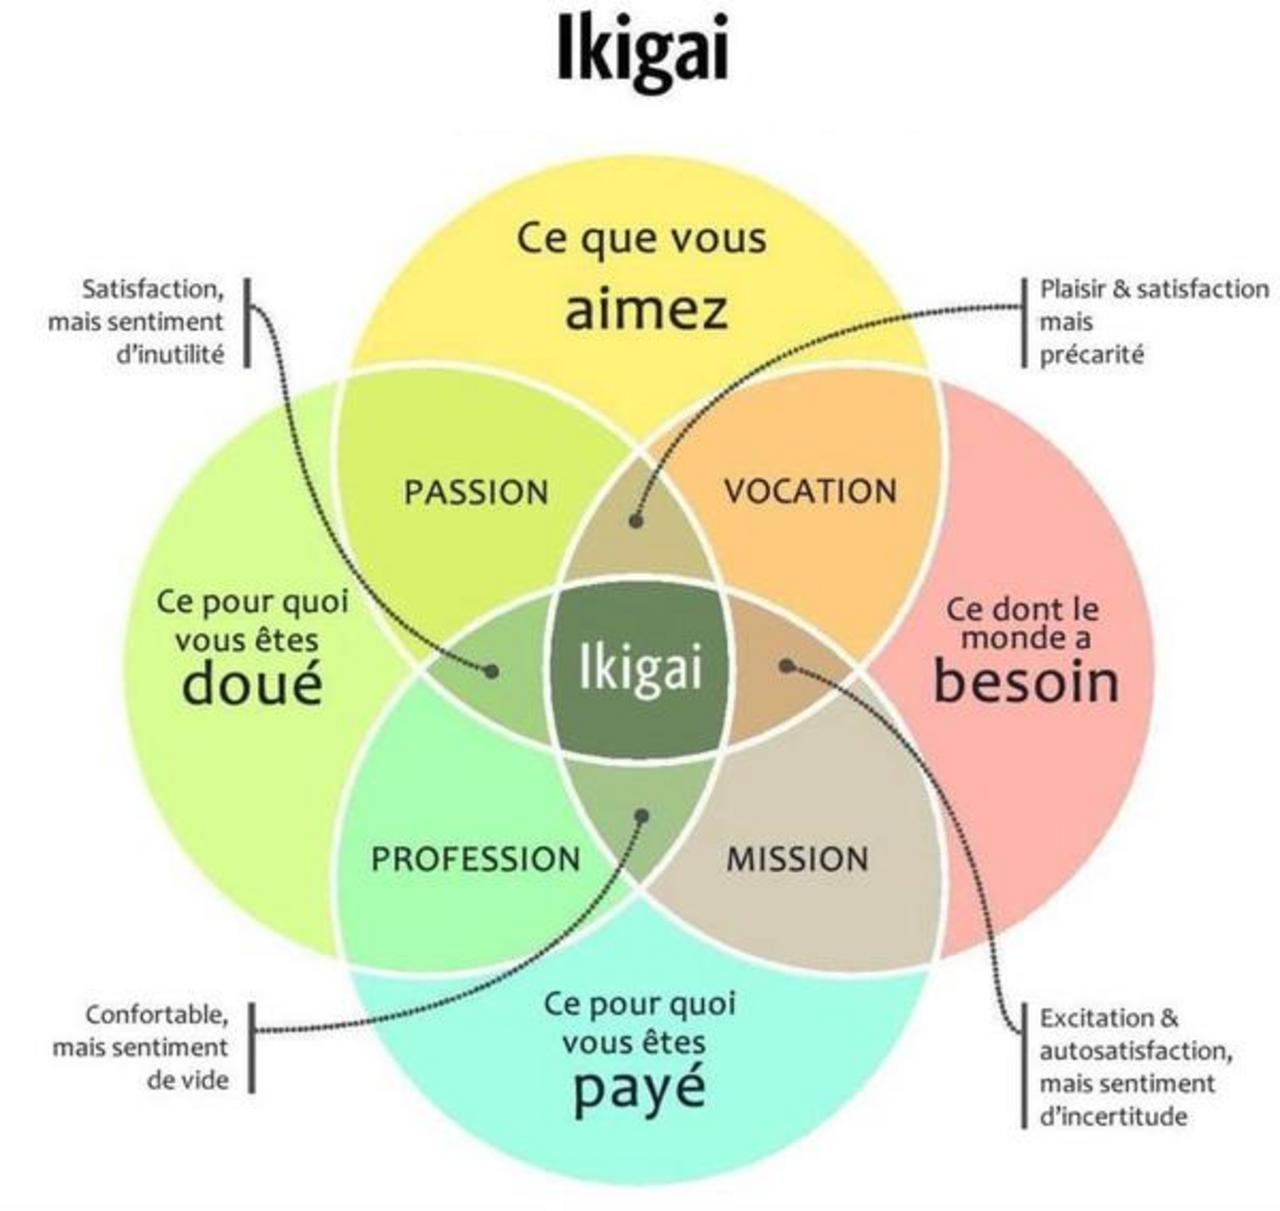 ikigai-illustration.jpg